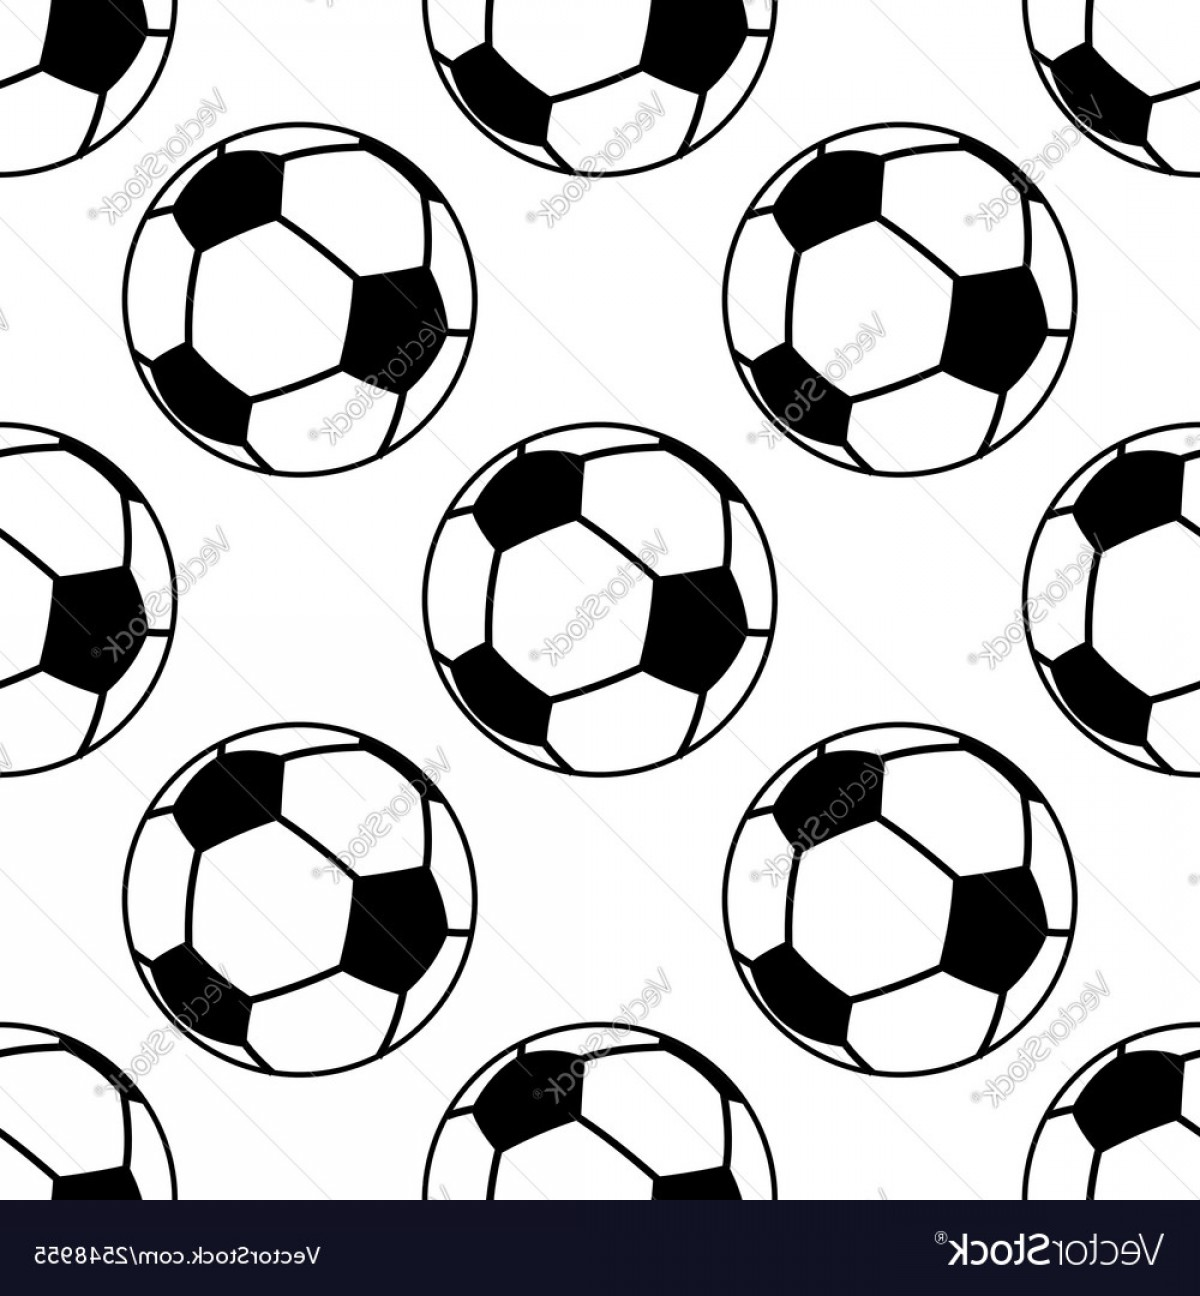 Vector Soccer Ball Pattern: Football Or Soccer Ball Seamless Pattern Vector